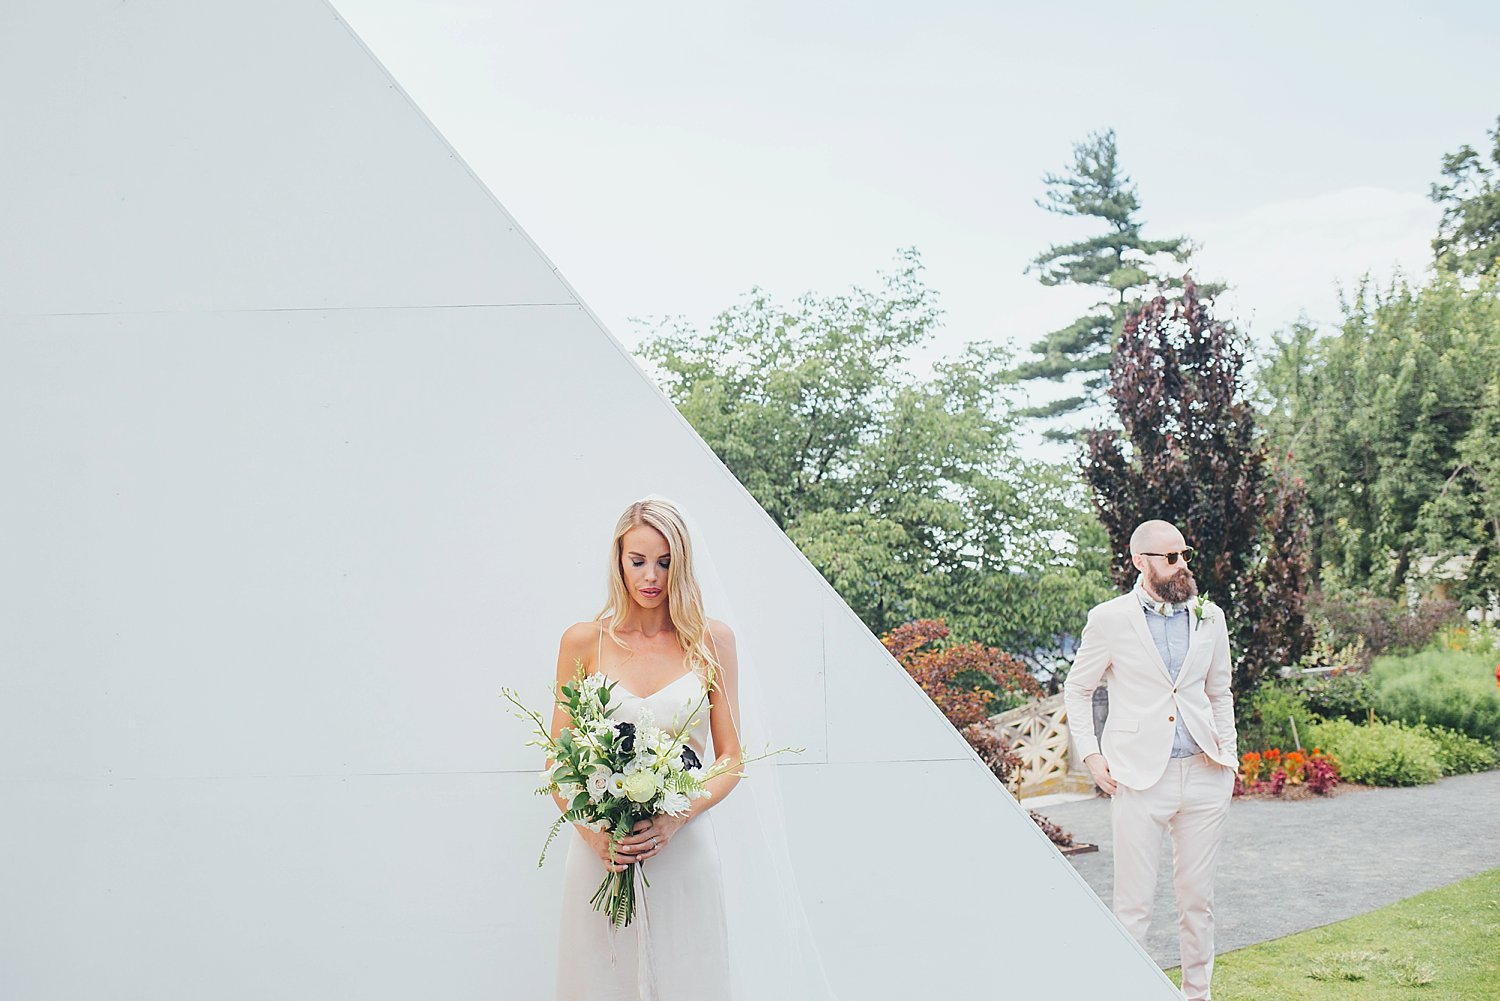 nyc-wedding-photography-nj-tri-state-cinematography-intothestory-by-moo-jae_0333.jpg